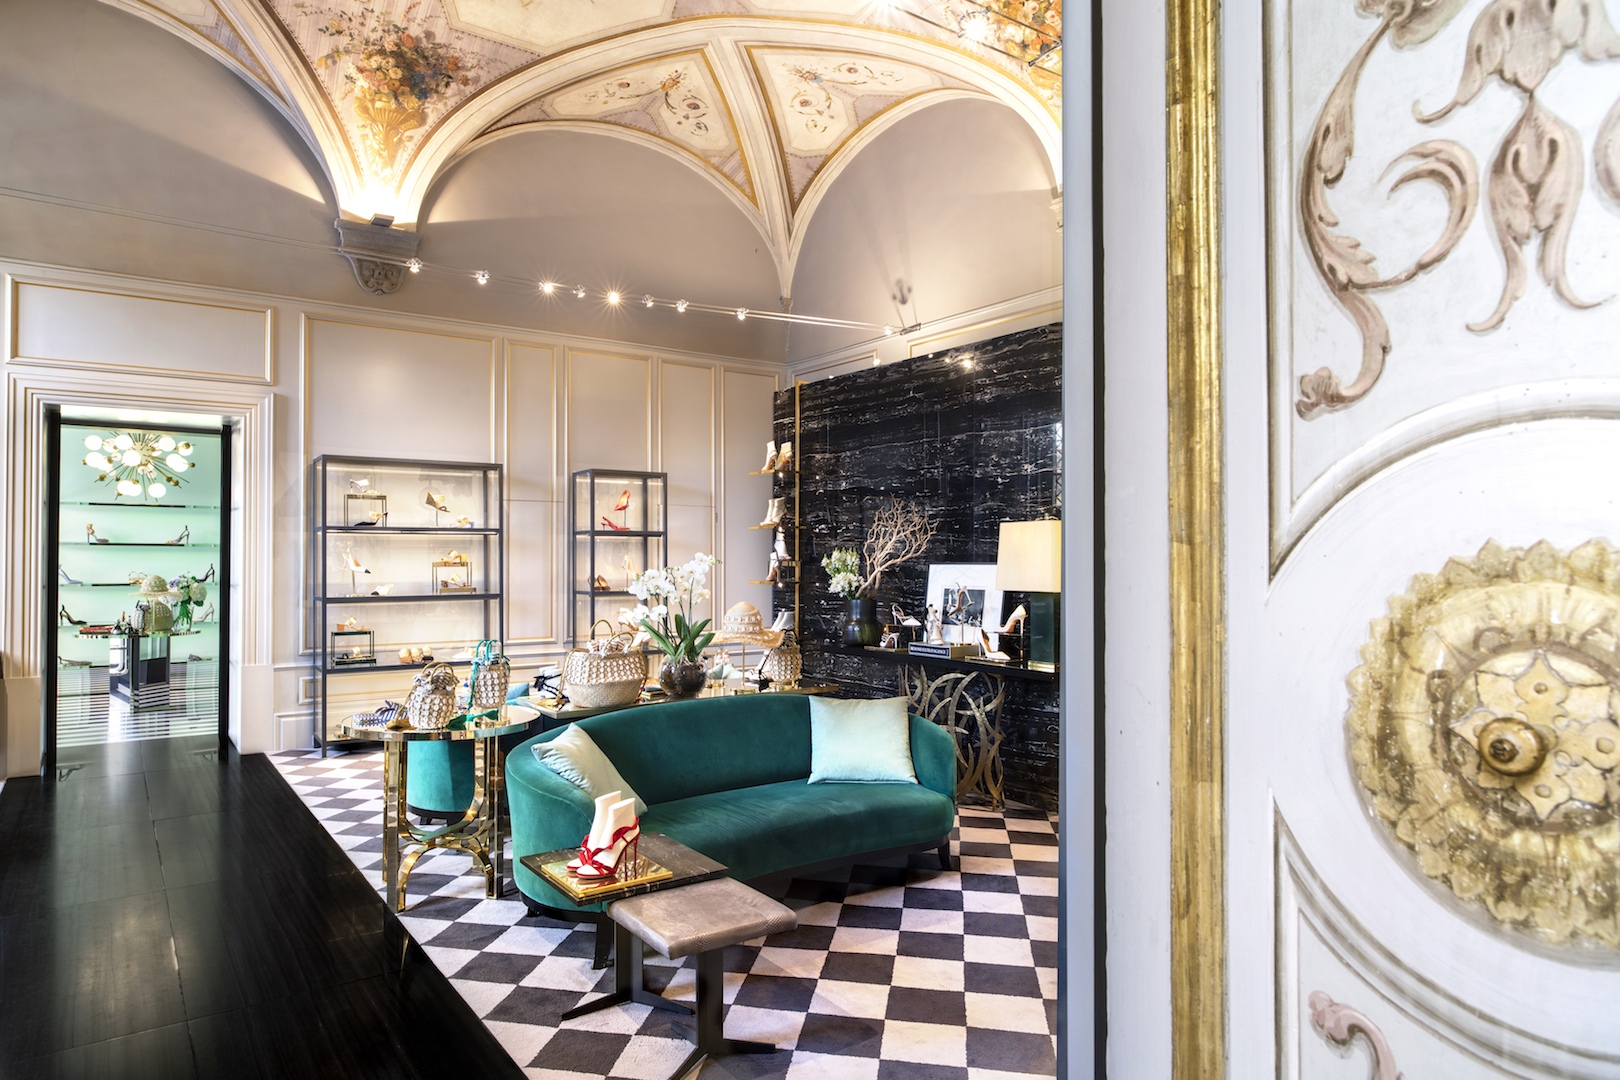 Aquazzura boutique Florence, Italy